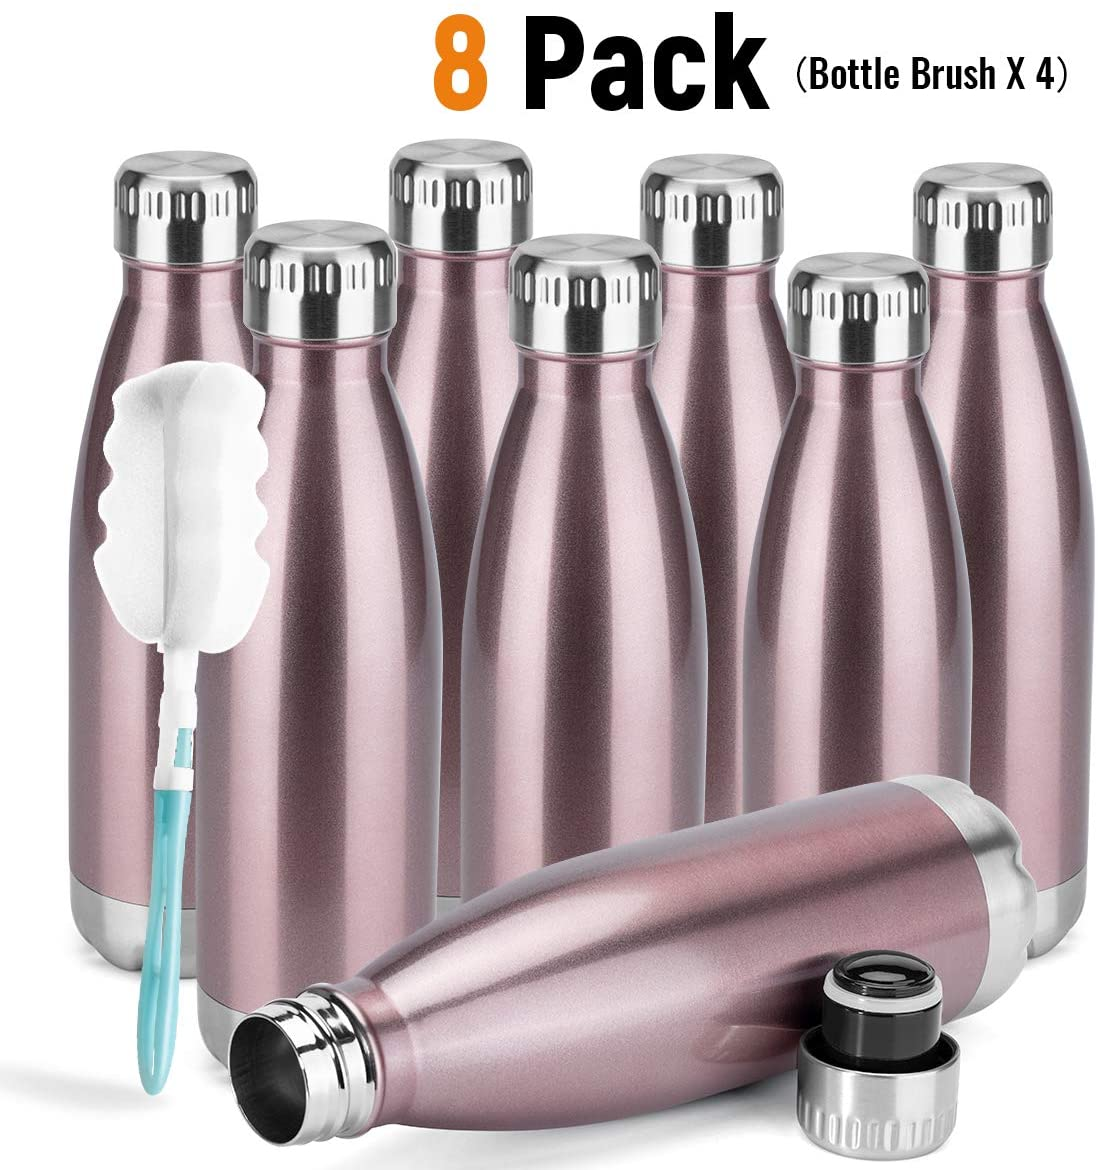 MANYHY 17 oz Stainless Steel Vacuum Insulated Water Bottle Metal Double Wall Cola Shape Travel Thermal Flask For Outdoor Sports Camping Hiking With Cleaning Brush (Rose Gold, 8 Pack)